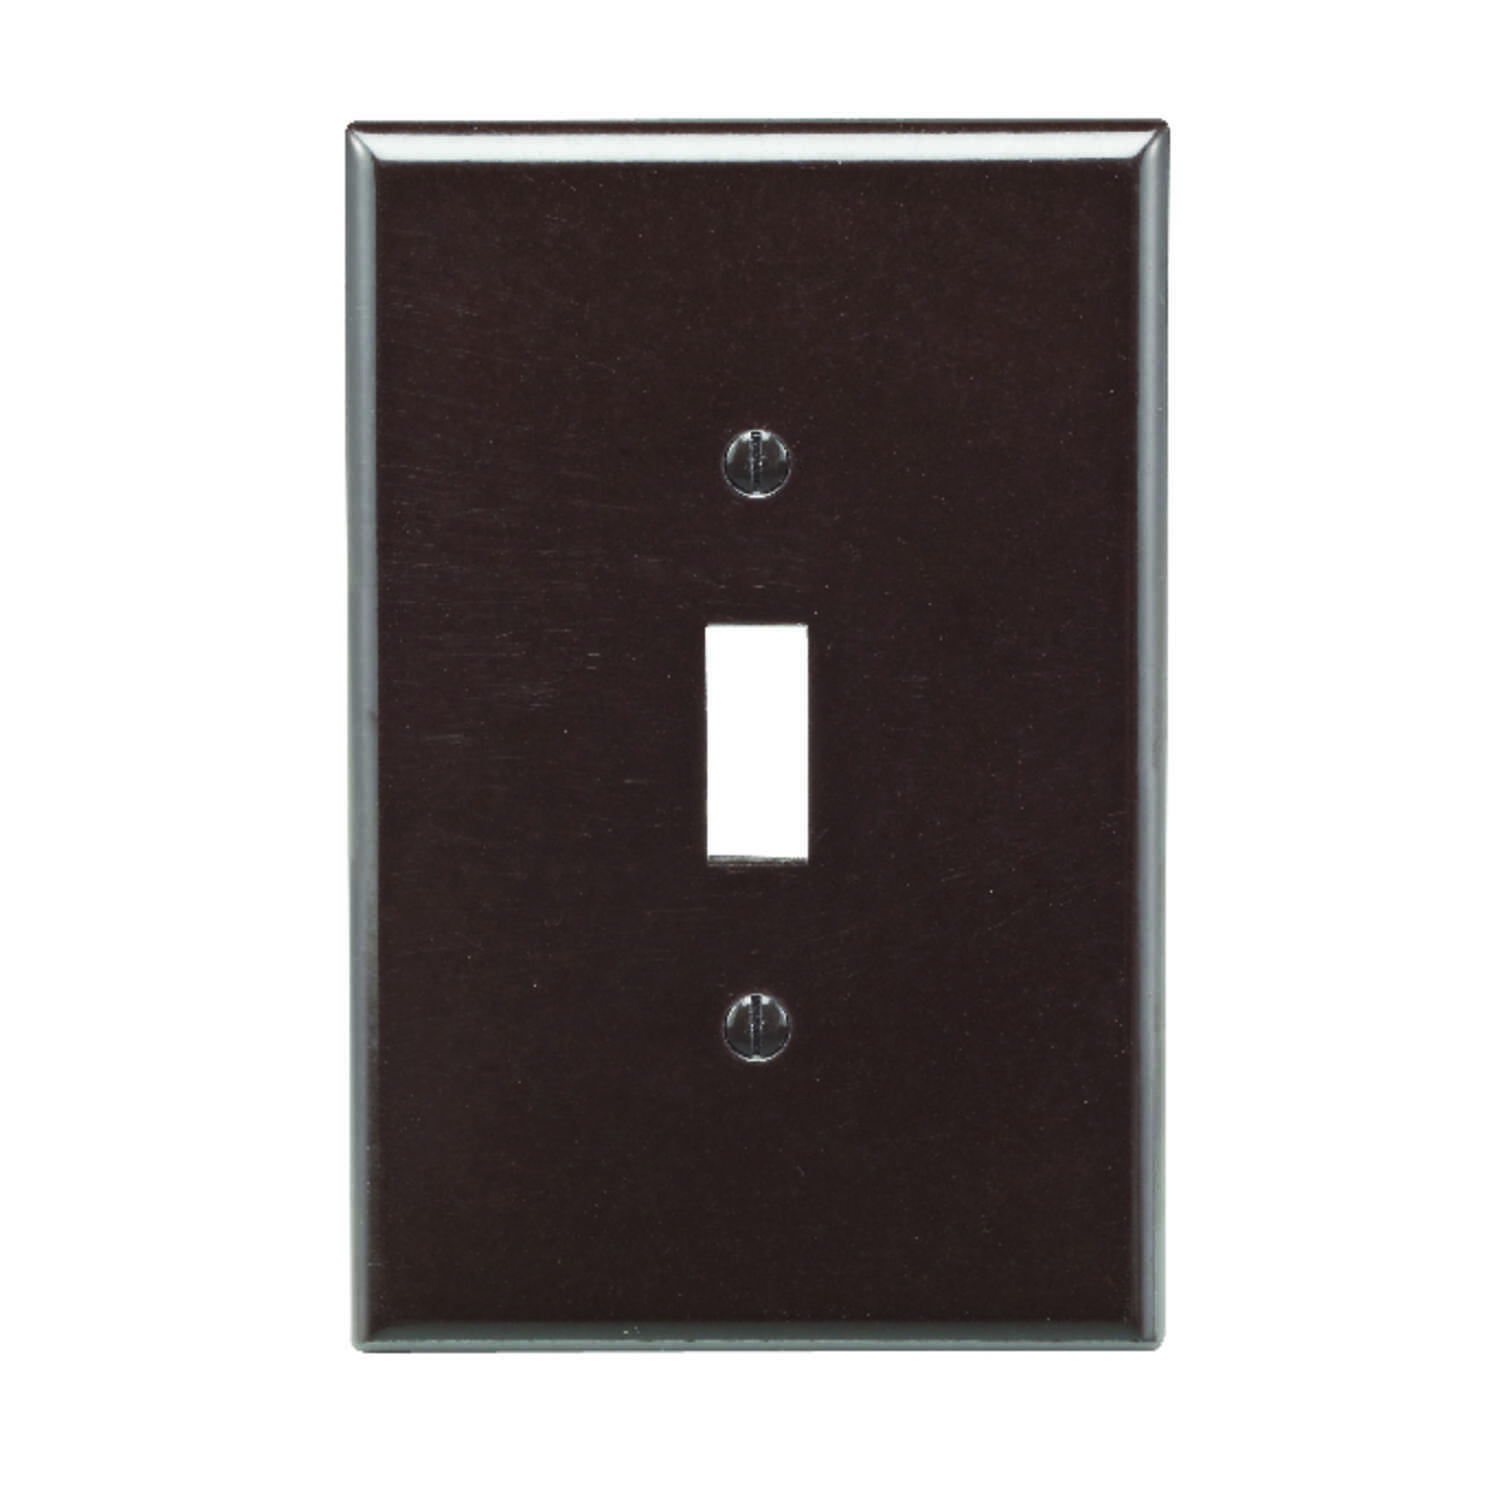 Leviton  Brown  1 gang Plastic  Toggle  Wall Plate  1 pk